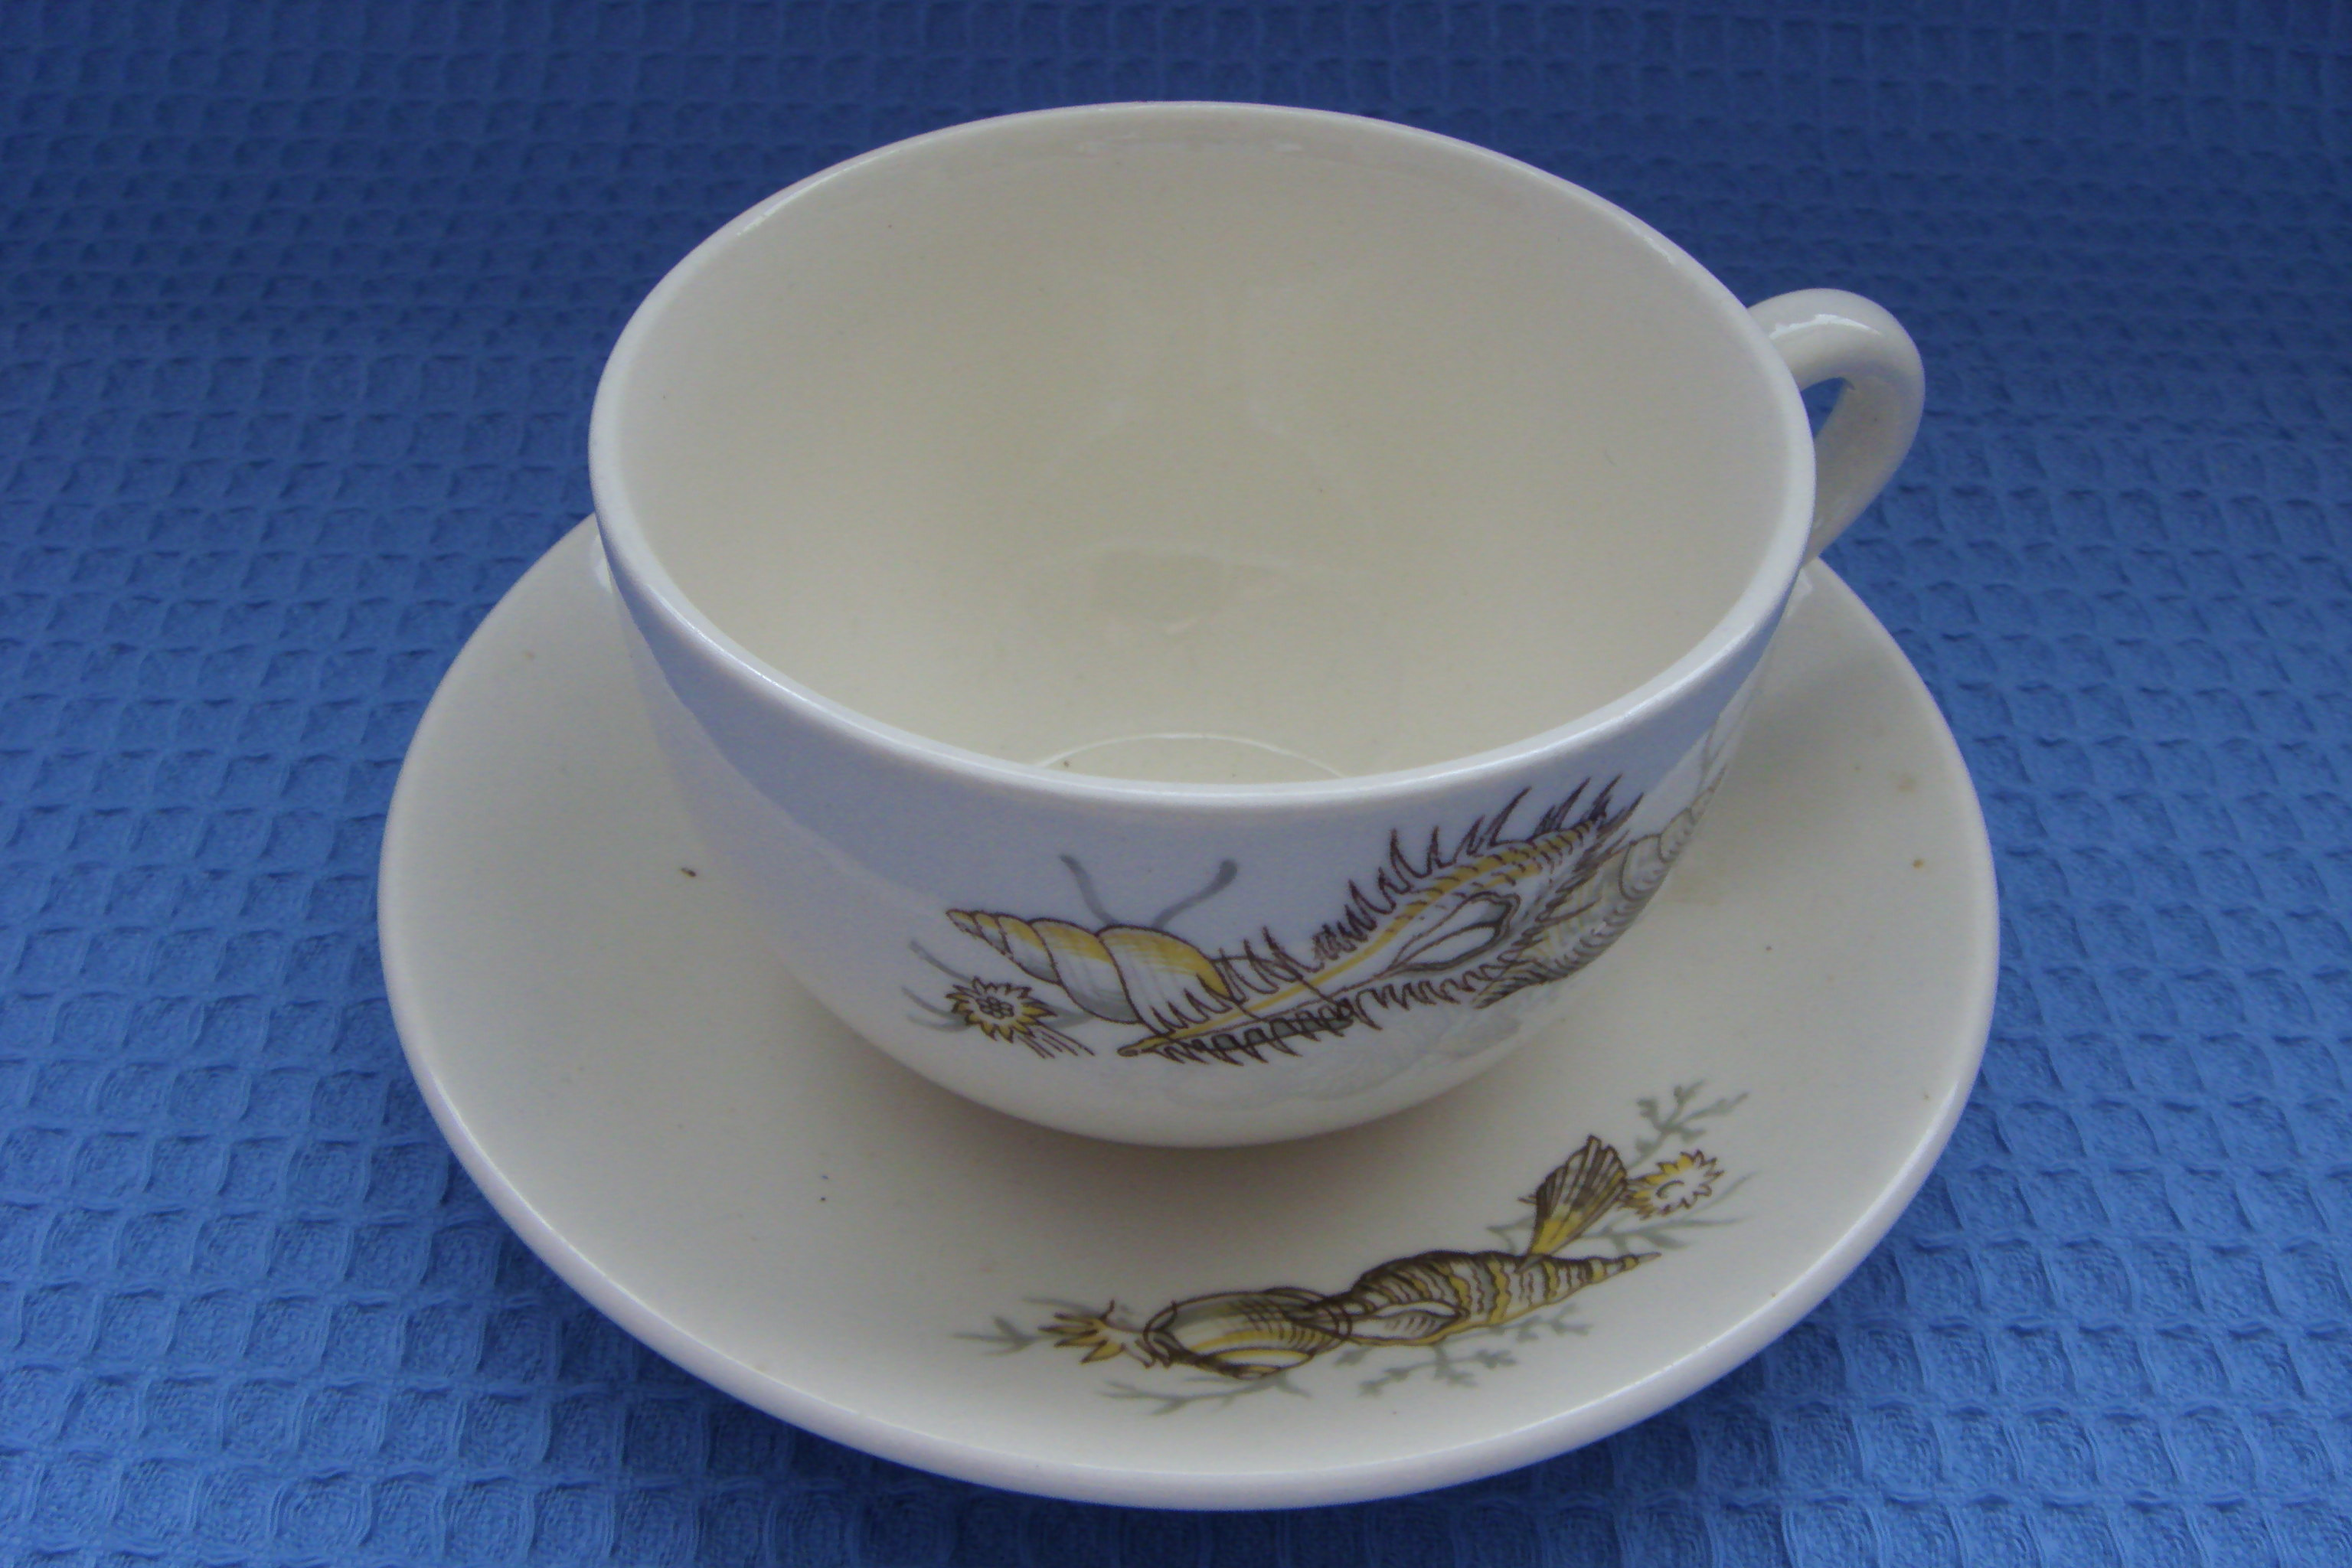 SEASHELL DESIGN CUP & SAUCER FROM THE ORIENT LINE